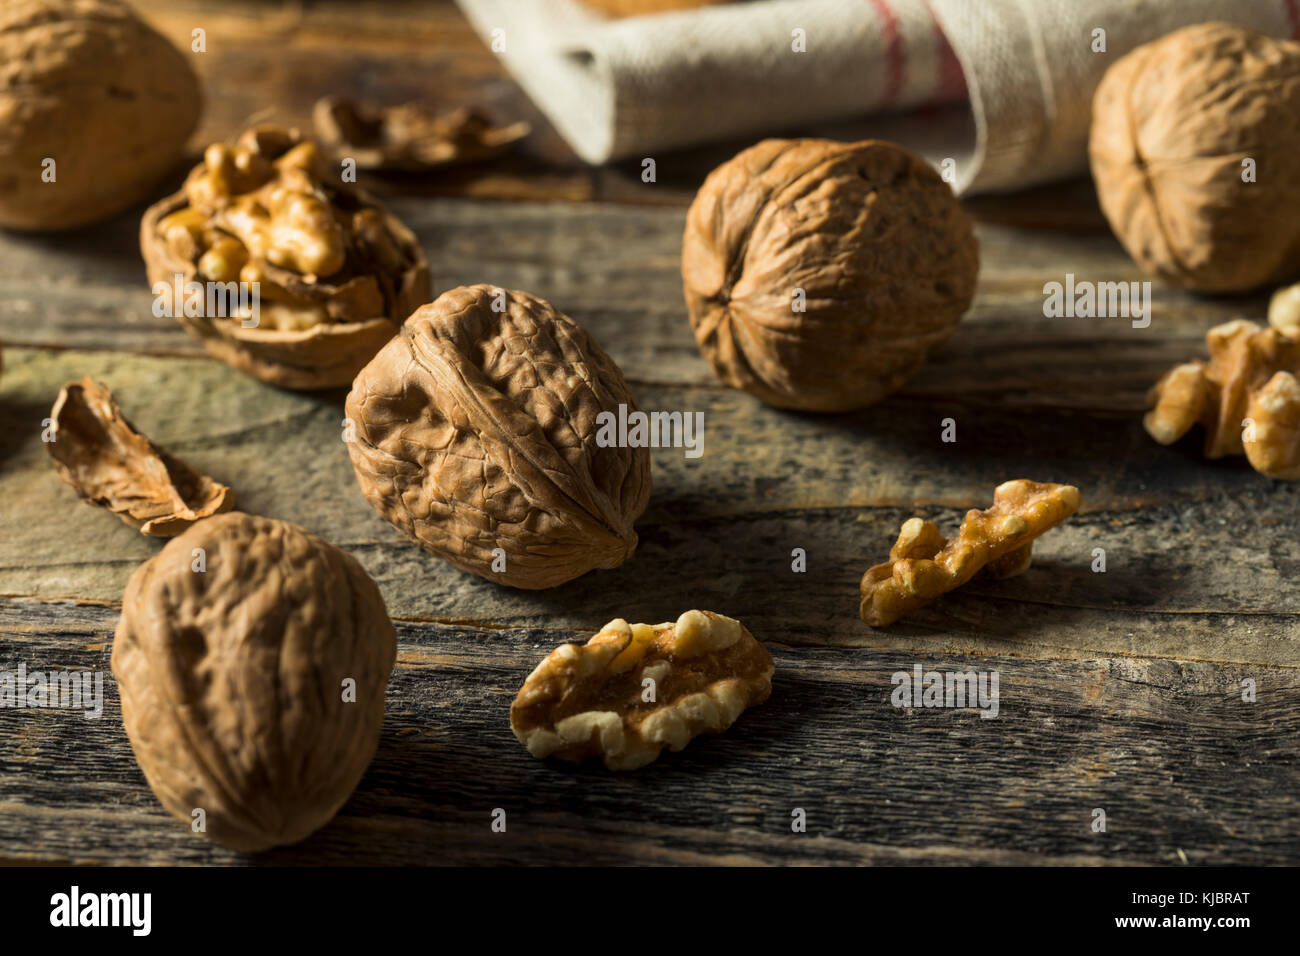 Raw Brown Organic Walnuts Ready to Eat Stock Photo